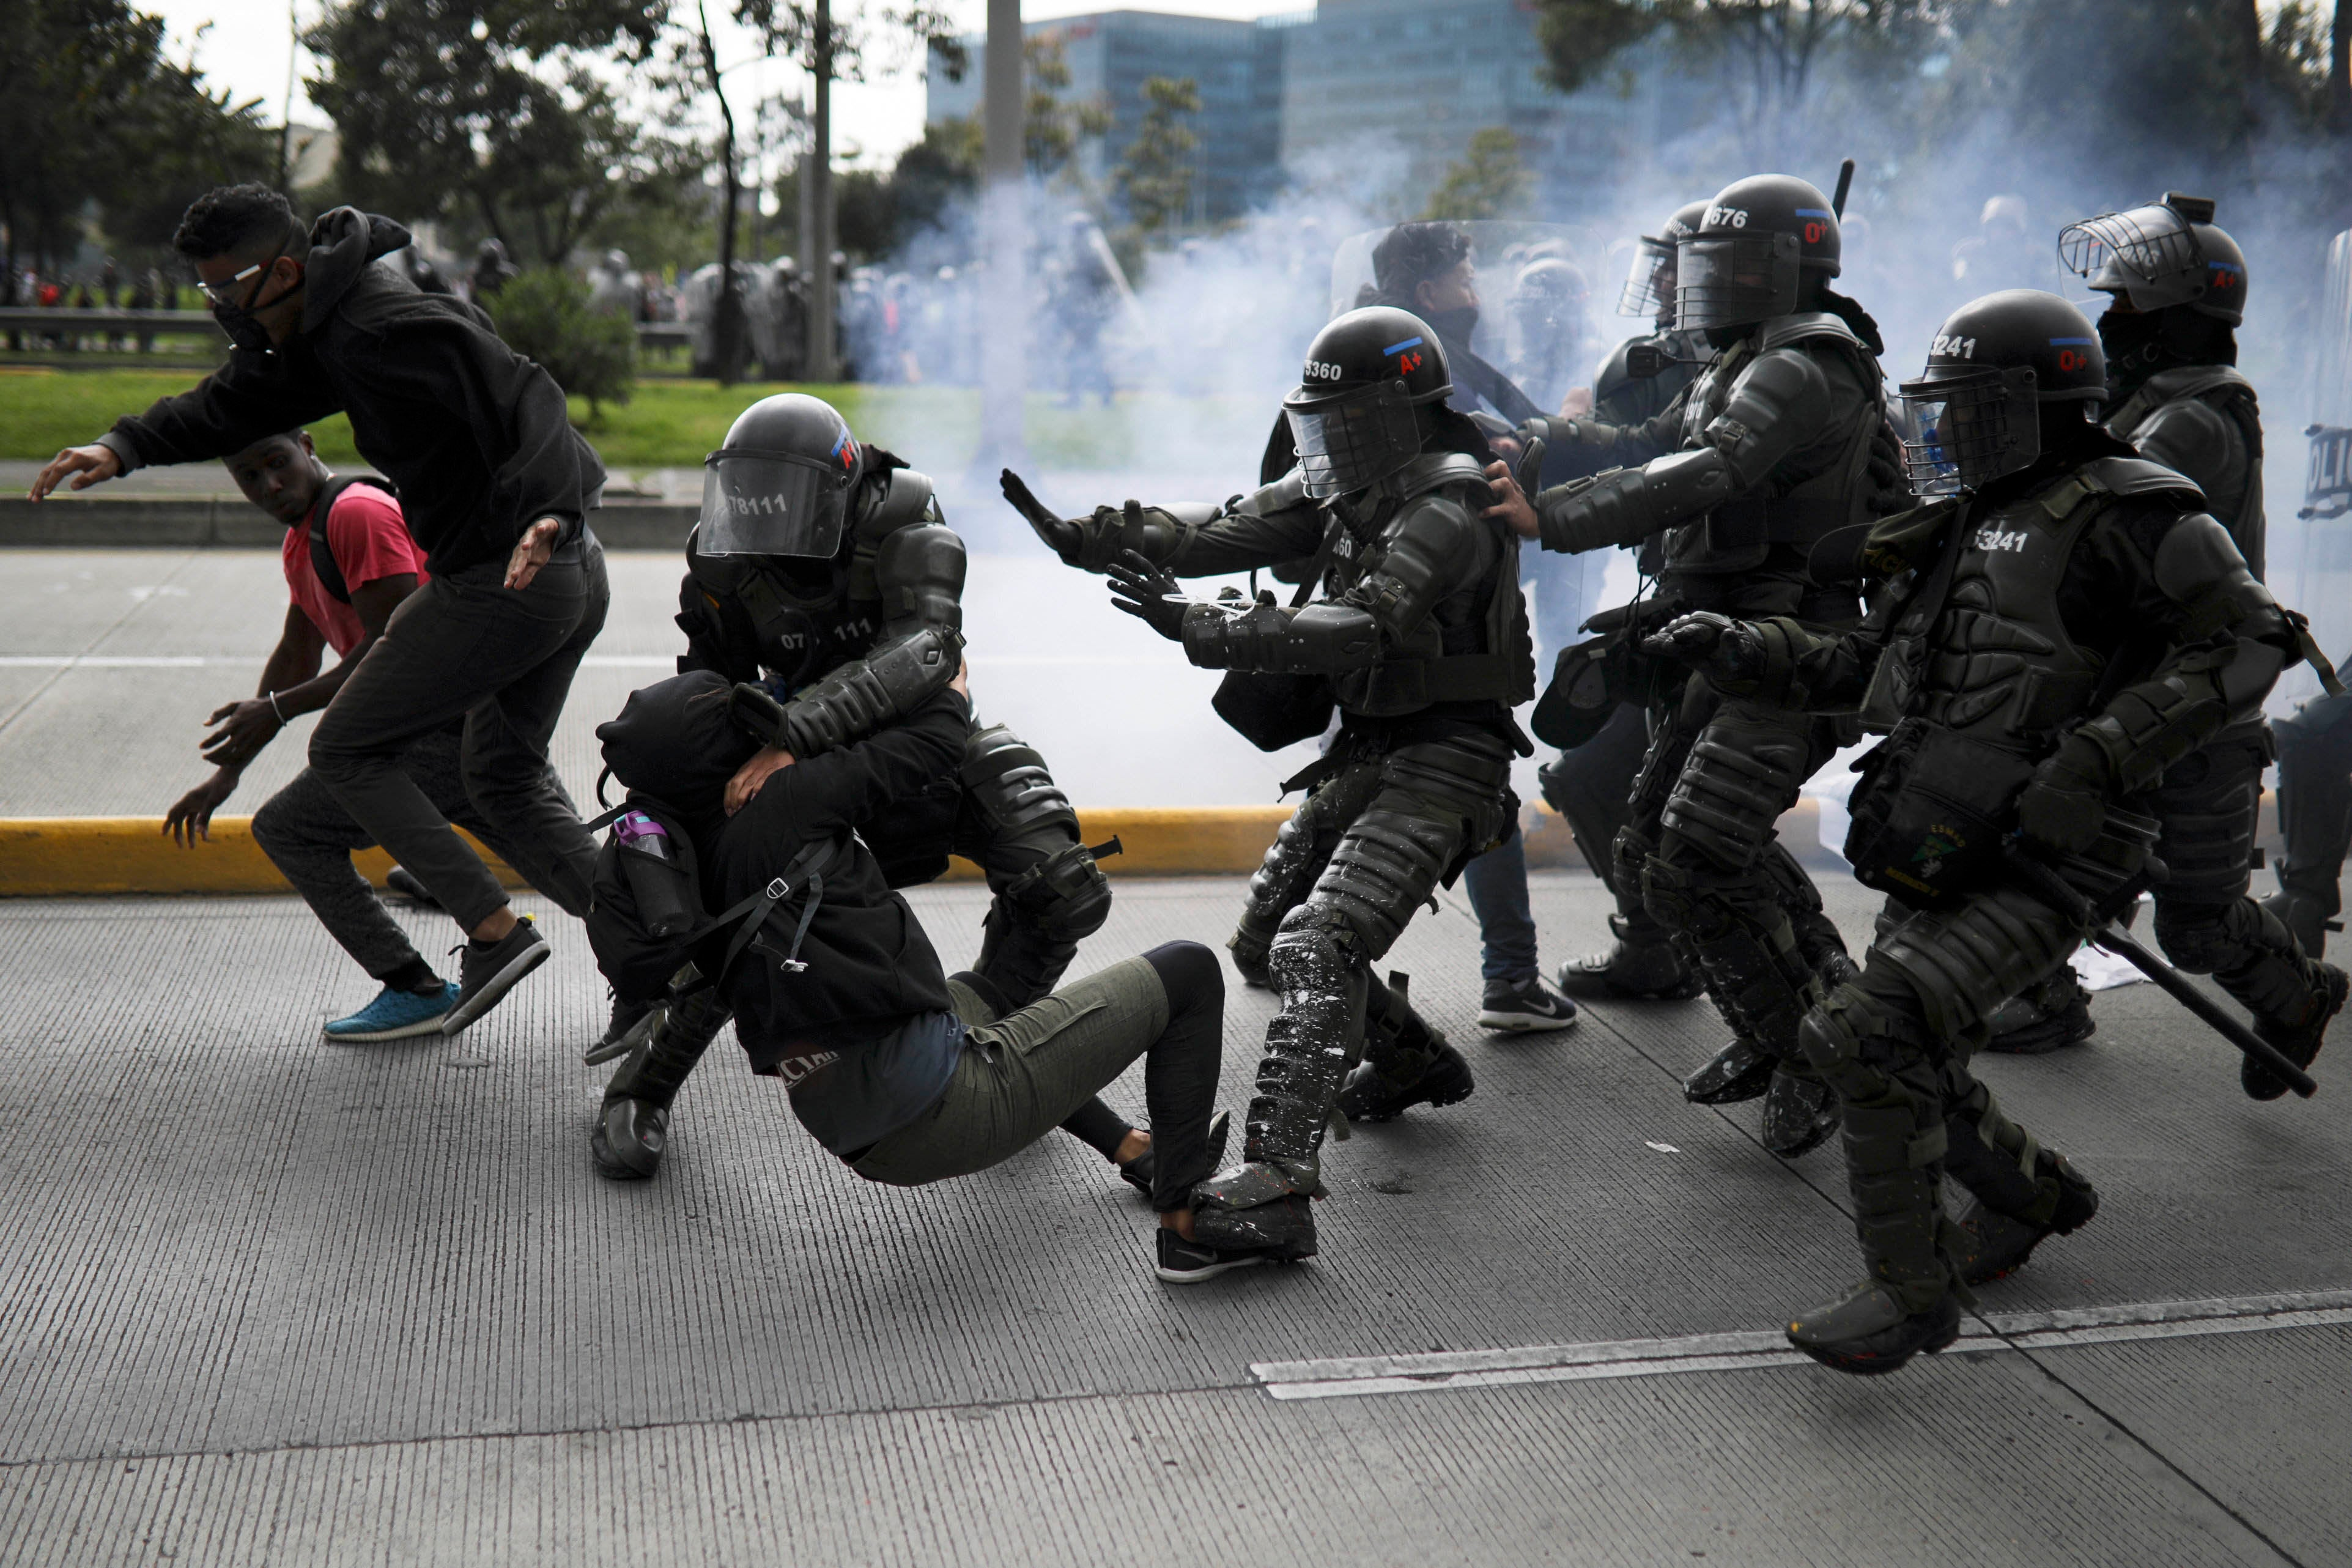 Colombia: Abusos policiales en el contexto de manifestaciones  multitudinarias | Human Rights Watch